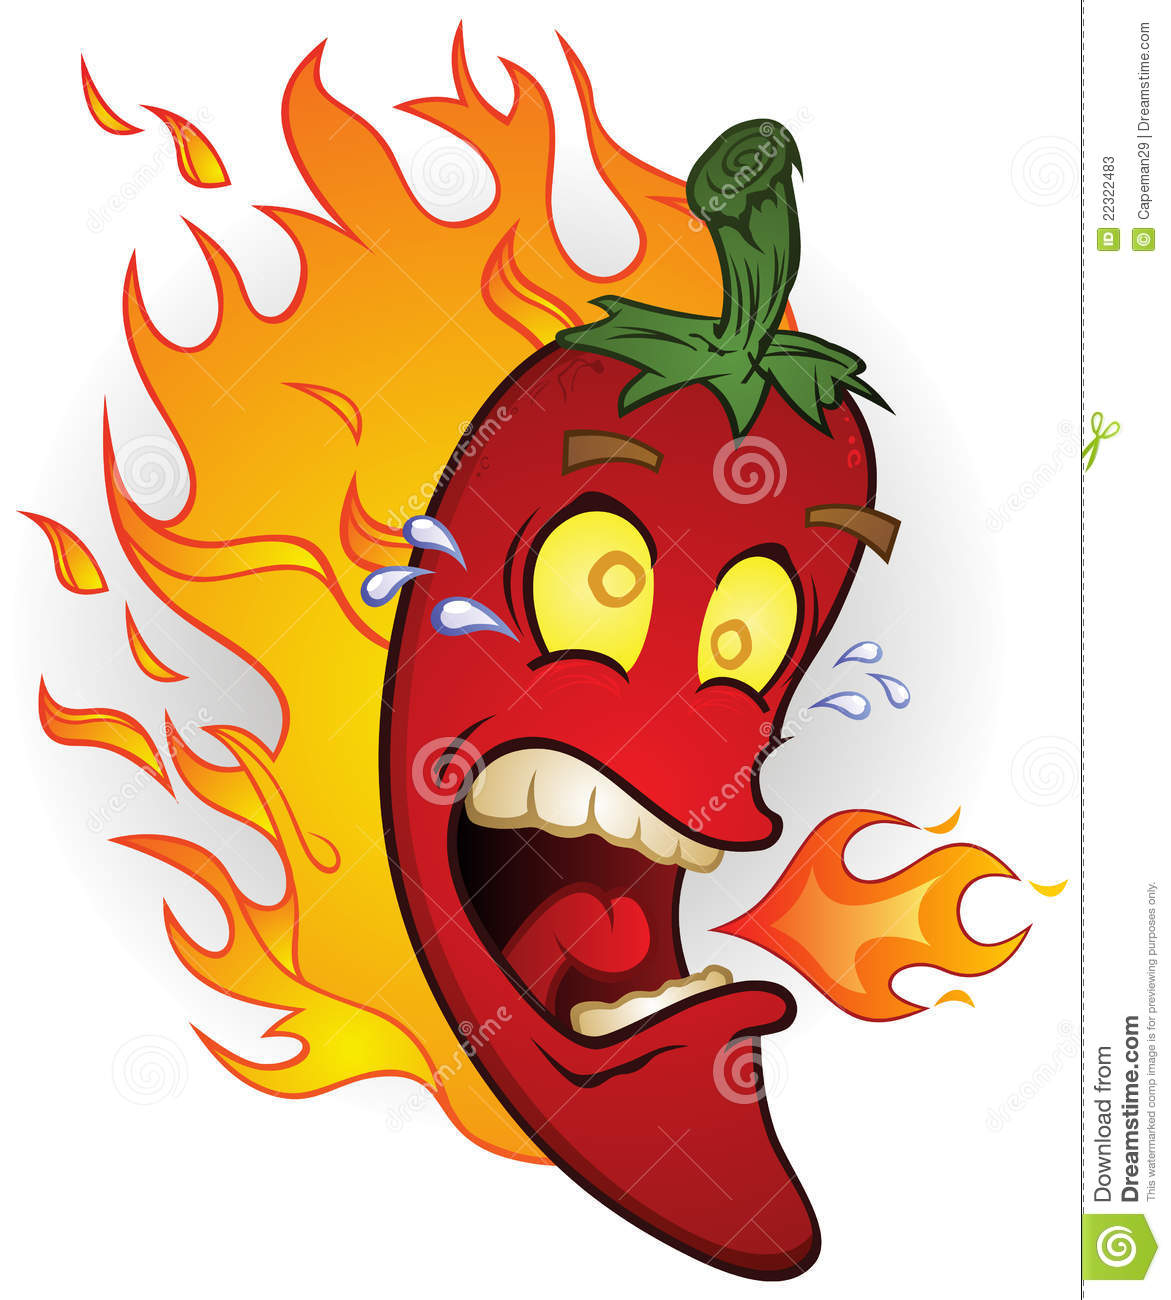 Chili Pepper On Fire Stock Photos - Image: 22322483